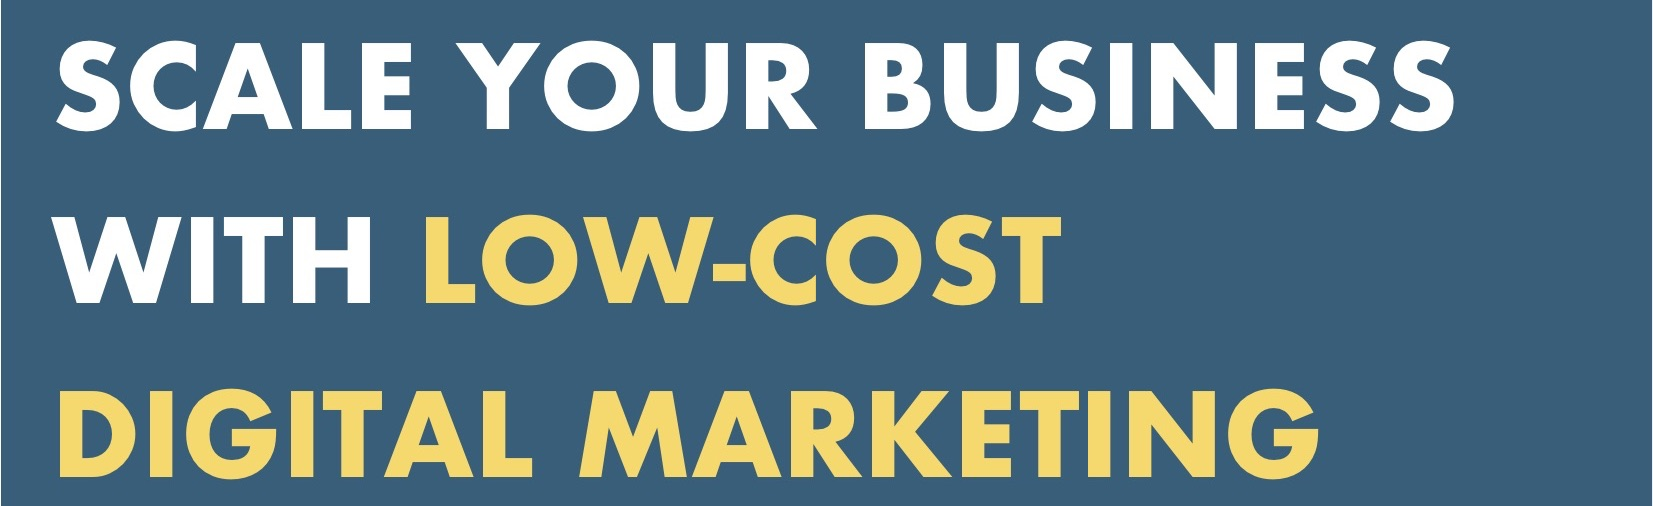 Scale Your Business With Low-Cost Digital Marketing